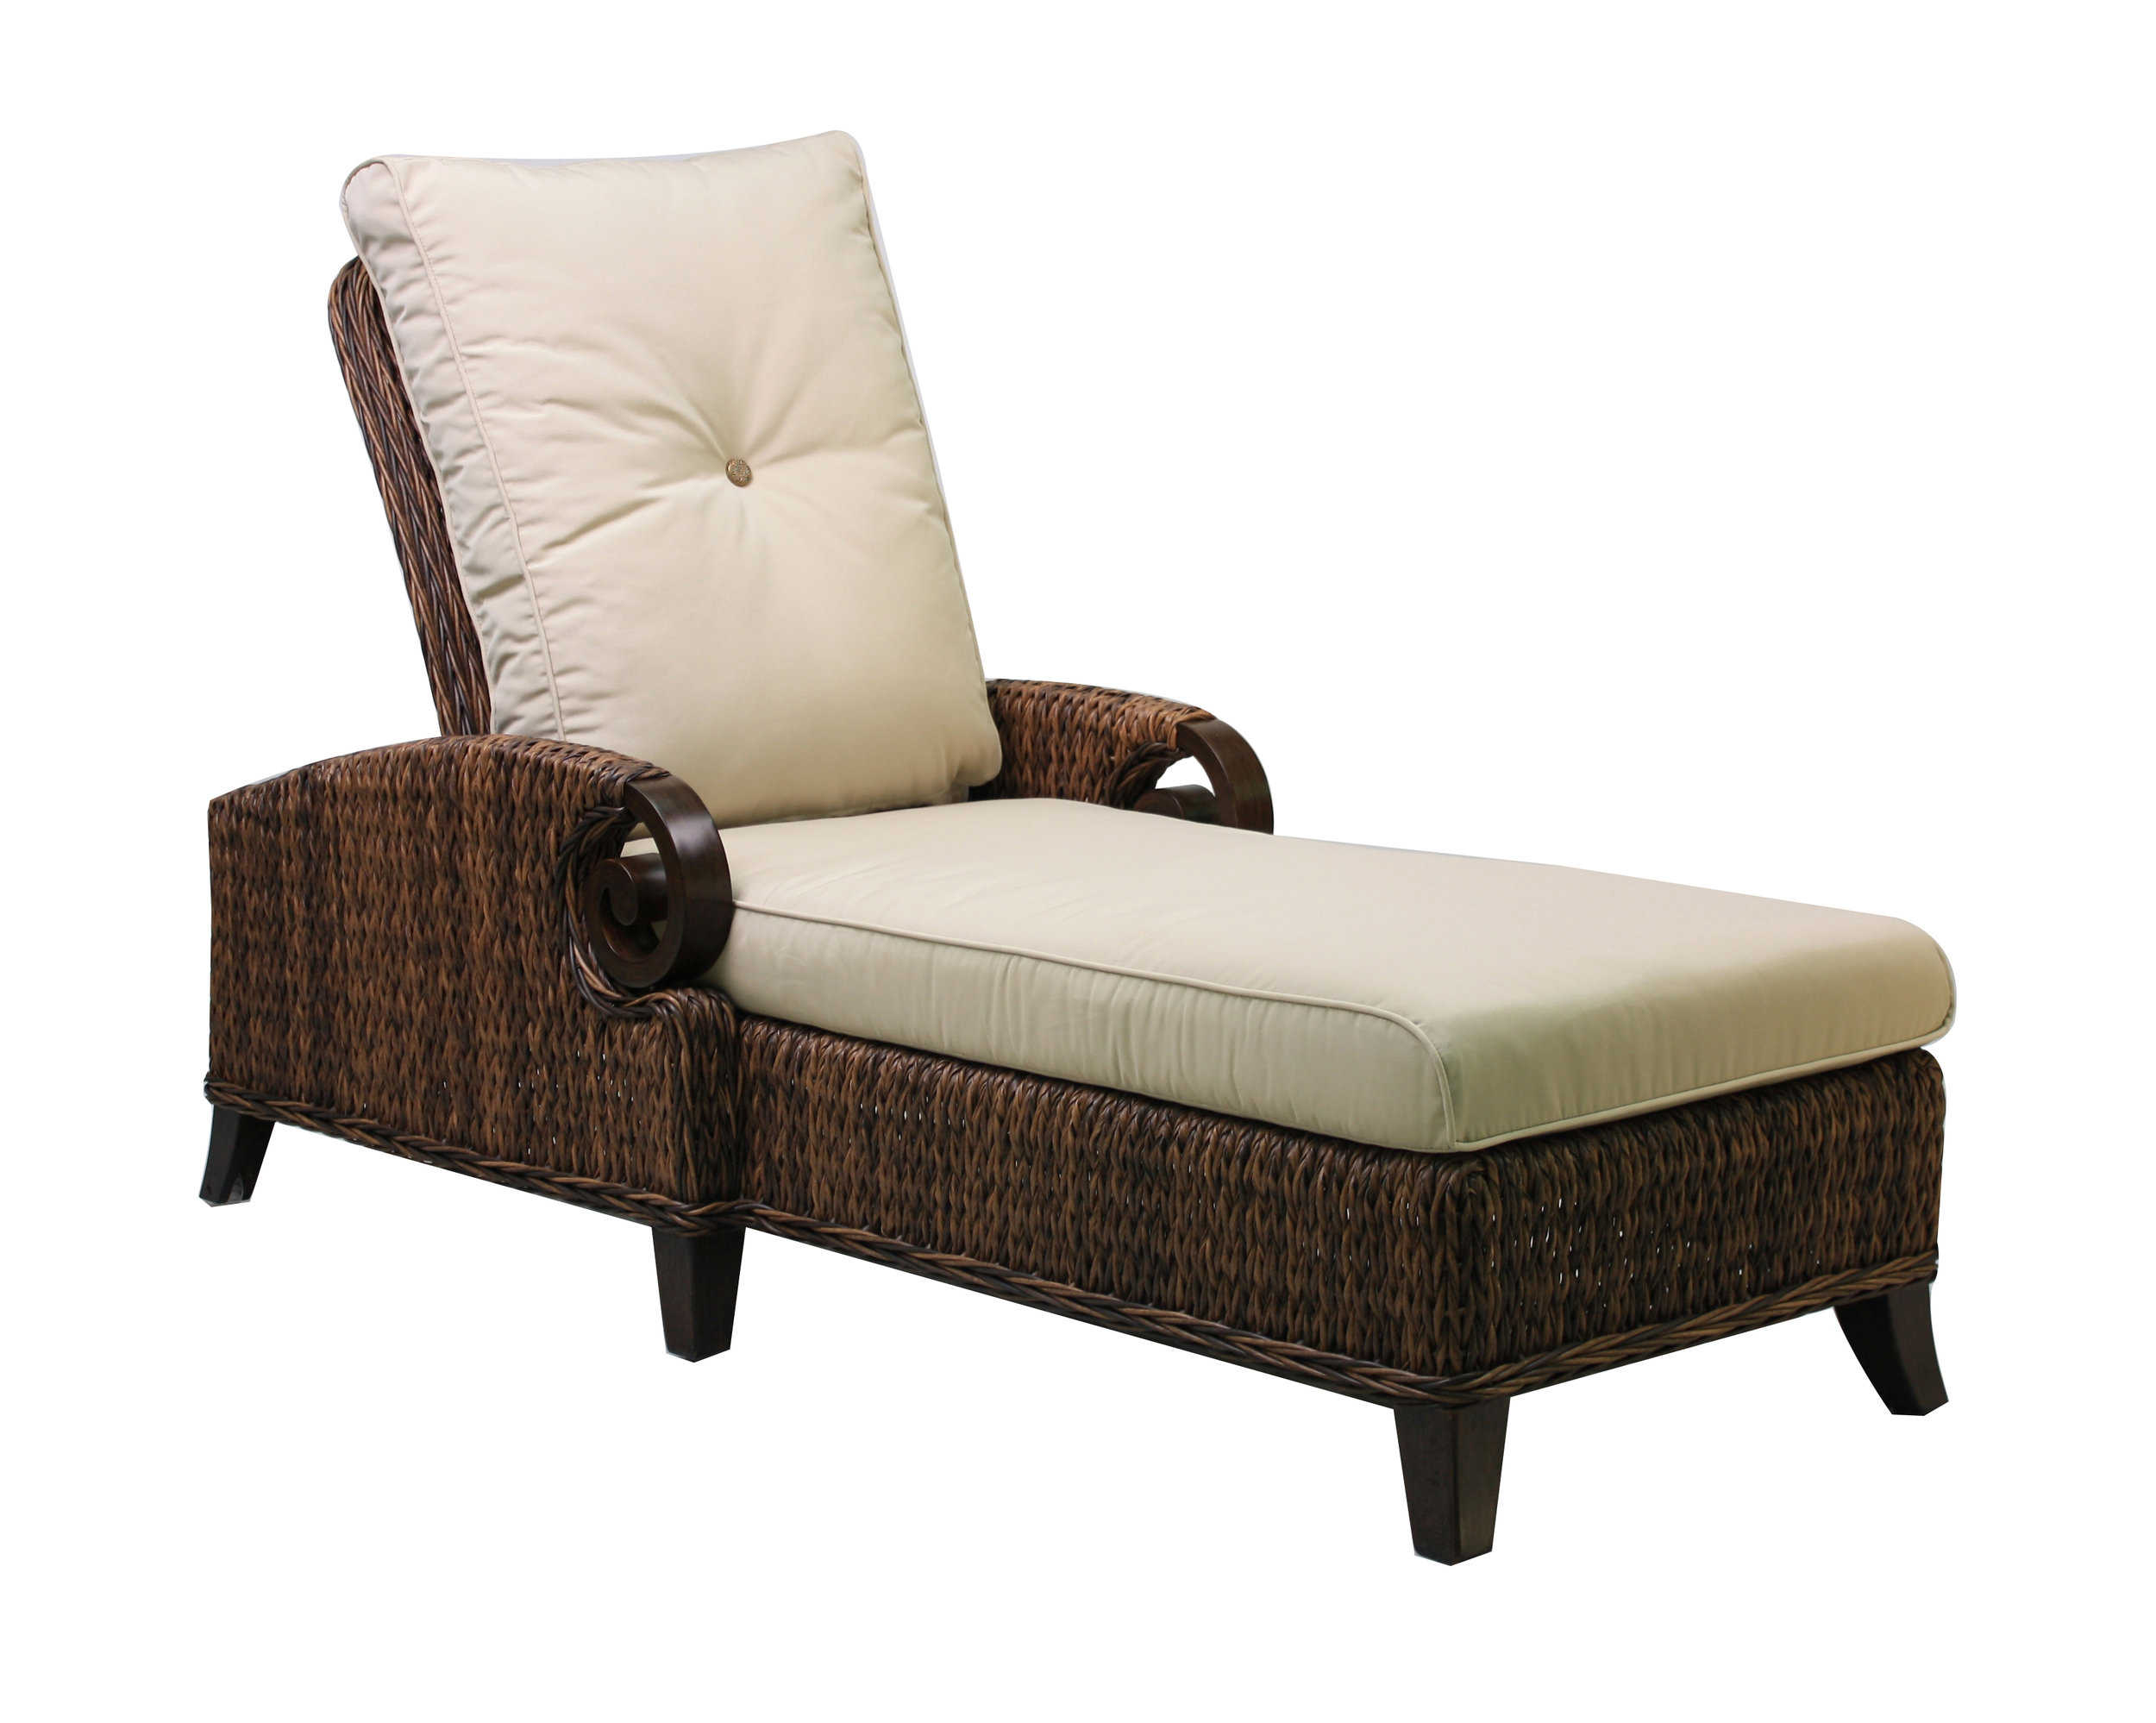 "973852 Antigua Adjustable Chaise   85.1"" x 32.4"" x 20.8"""